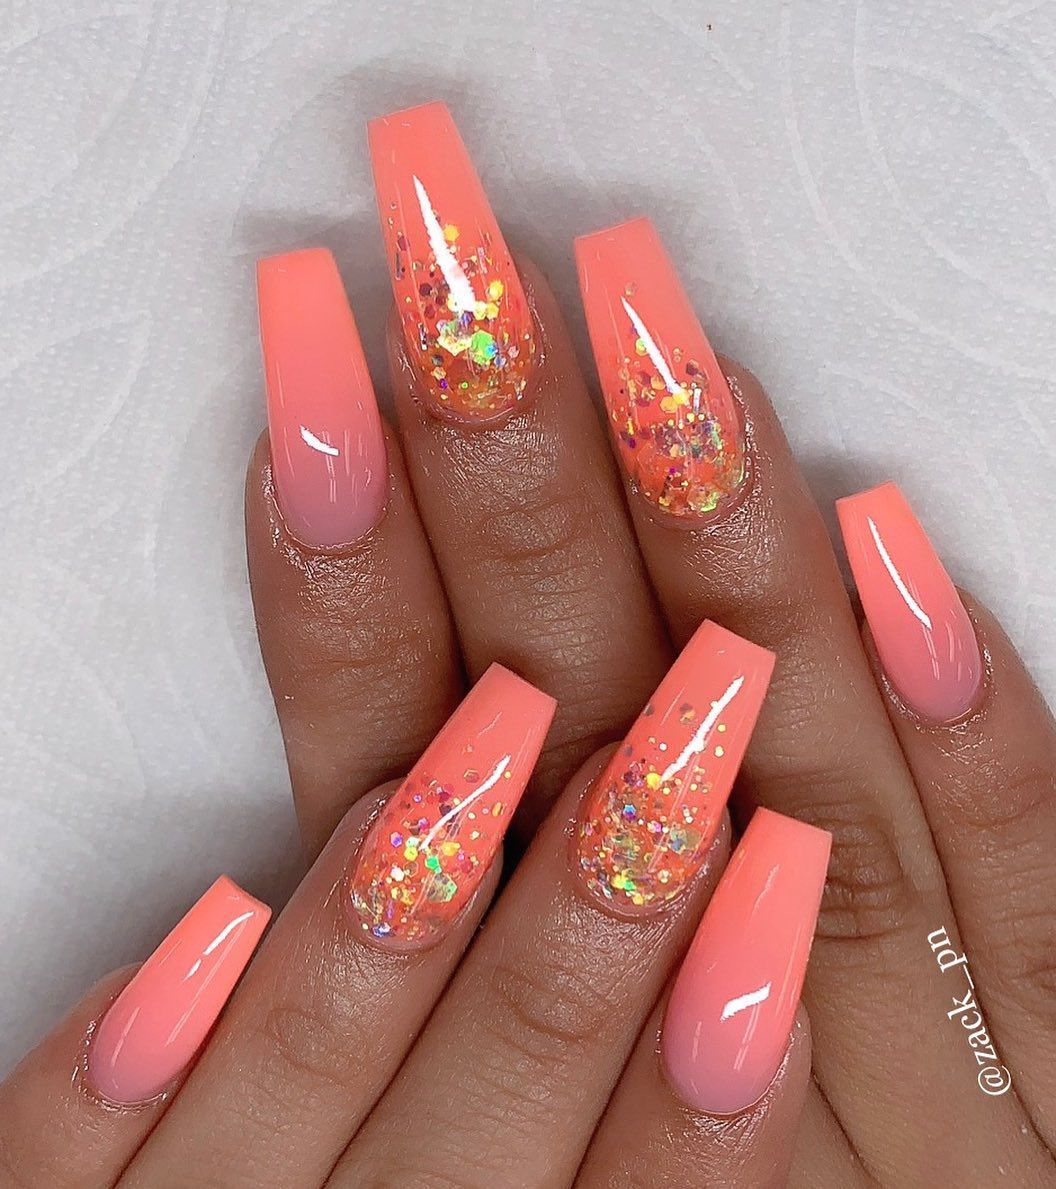 22 Best Jelly Nail Art Designs 2019 Letme Beauty In 2020 Bright Acrylic Nails Cute Acrylic Nail Designs Coral Acrylic Nails